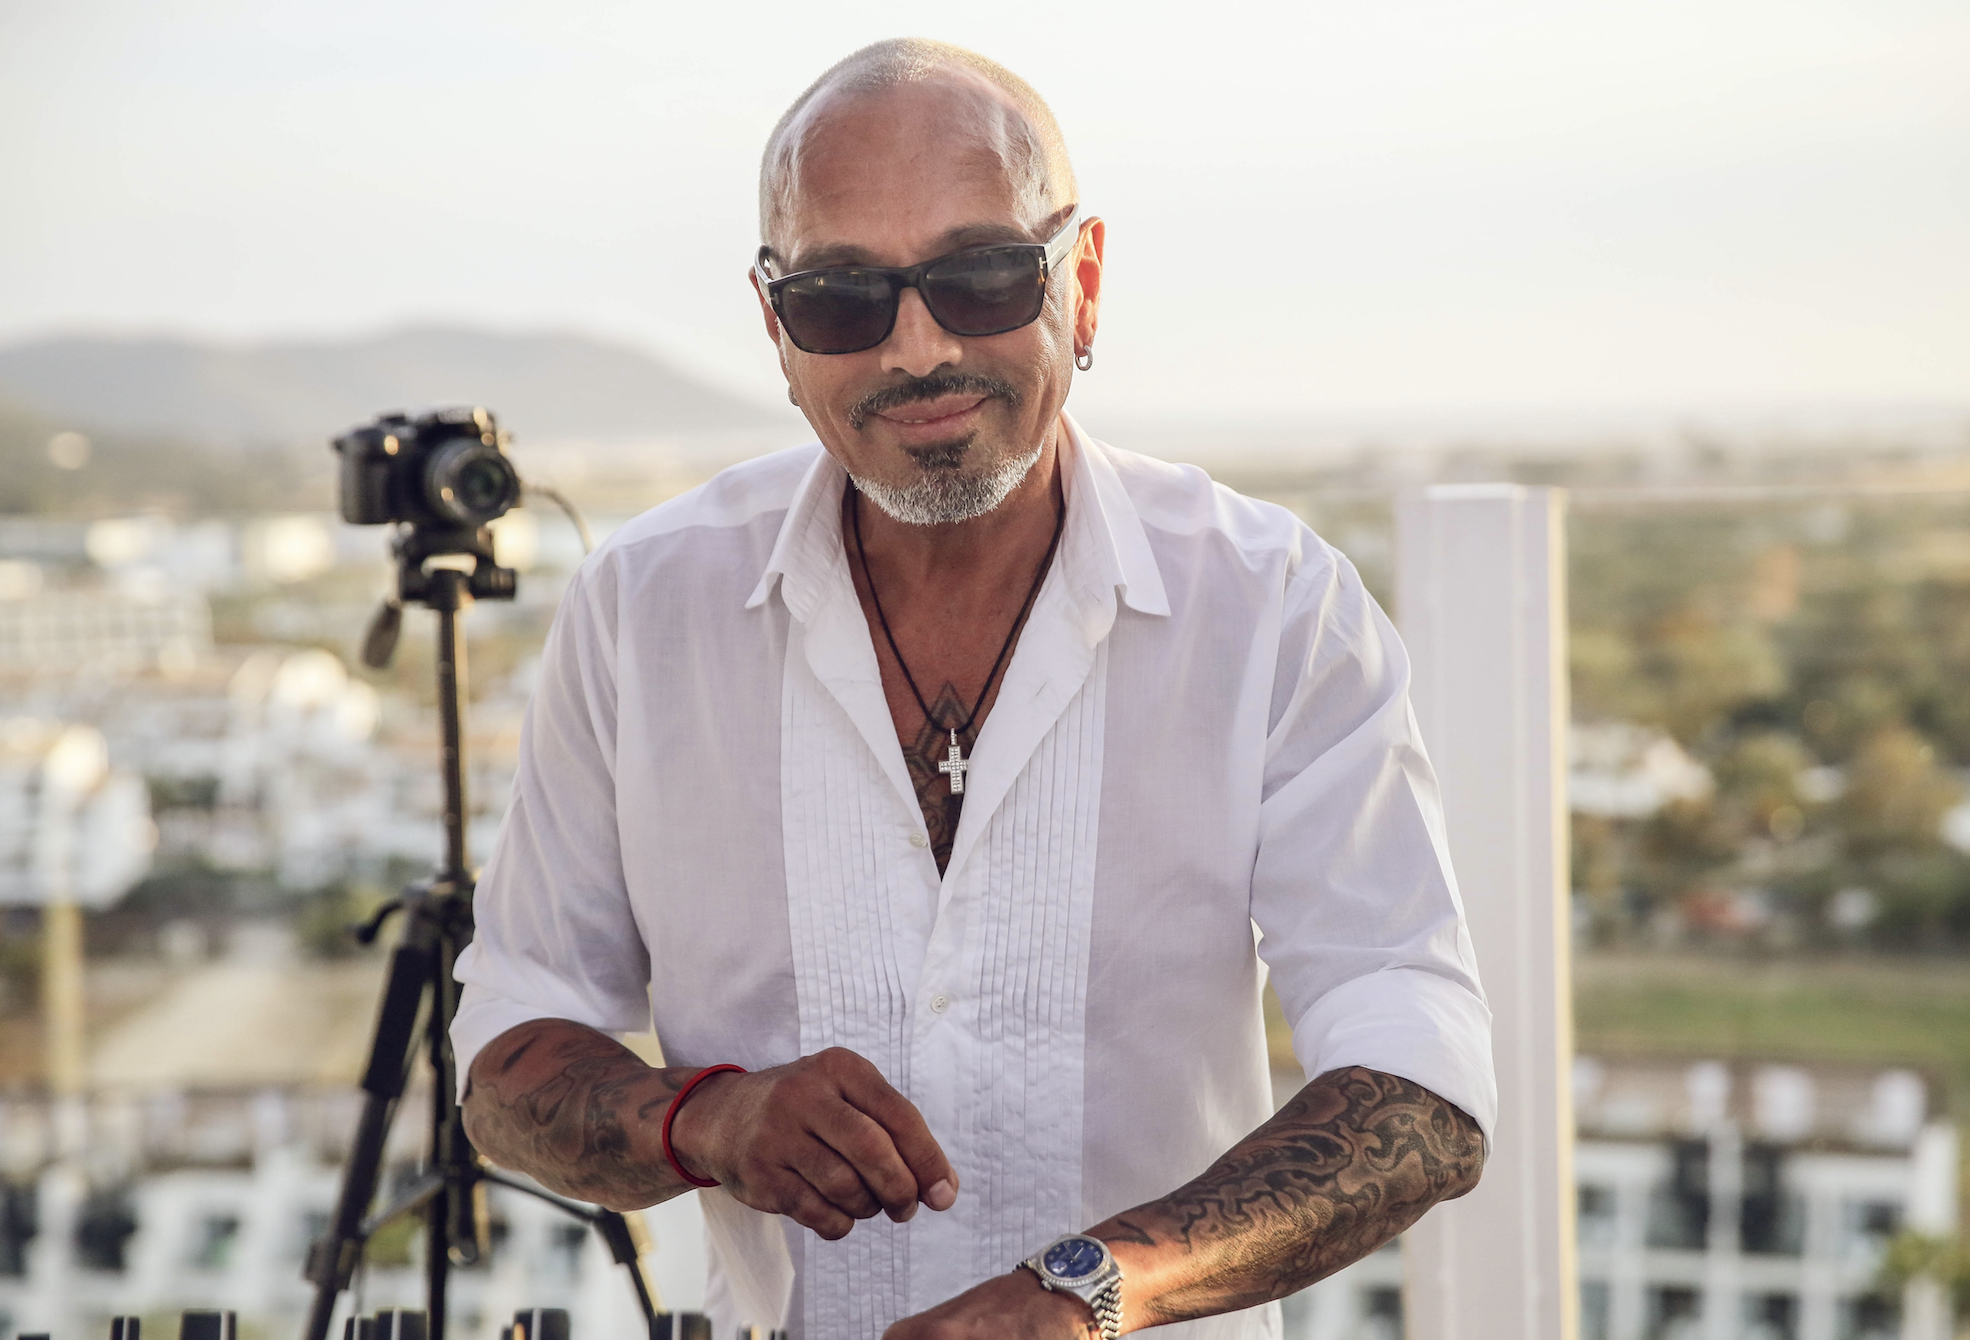 David Morales on Ibiza, embracing change and New York club culture